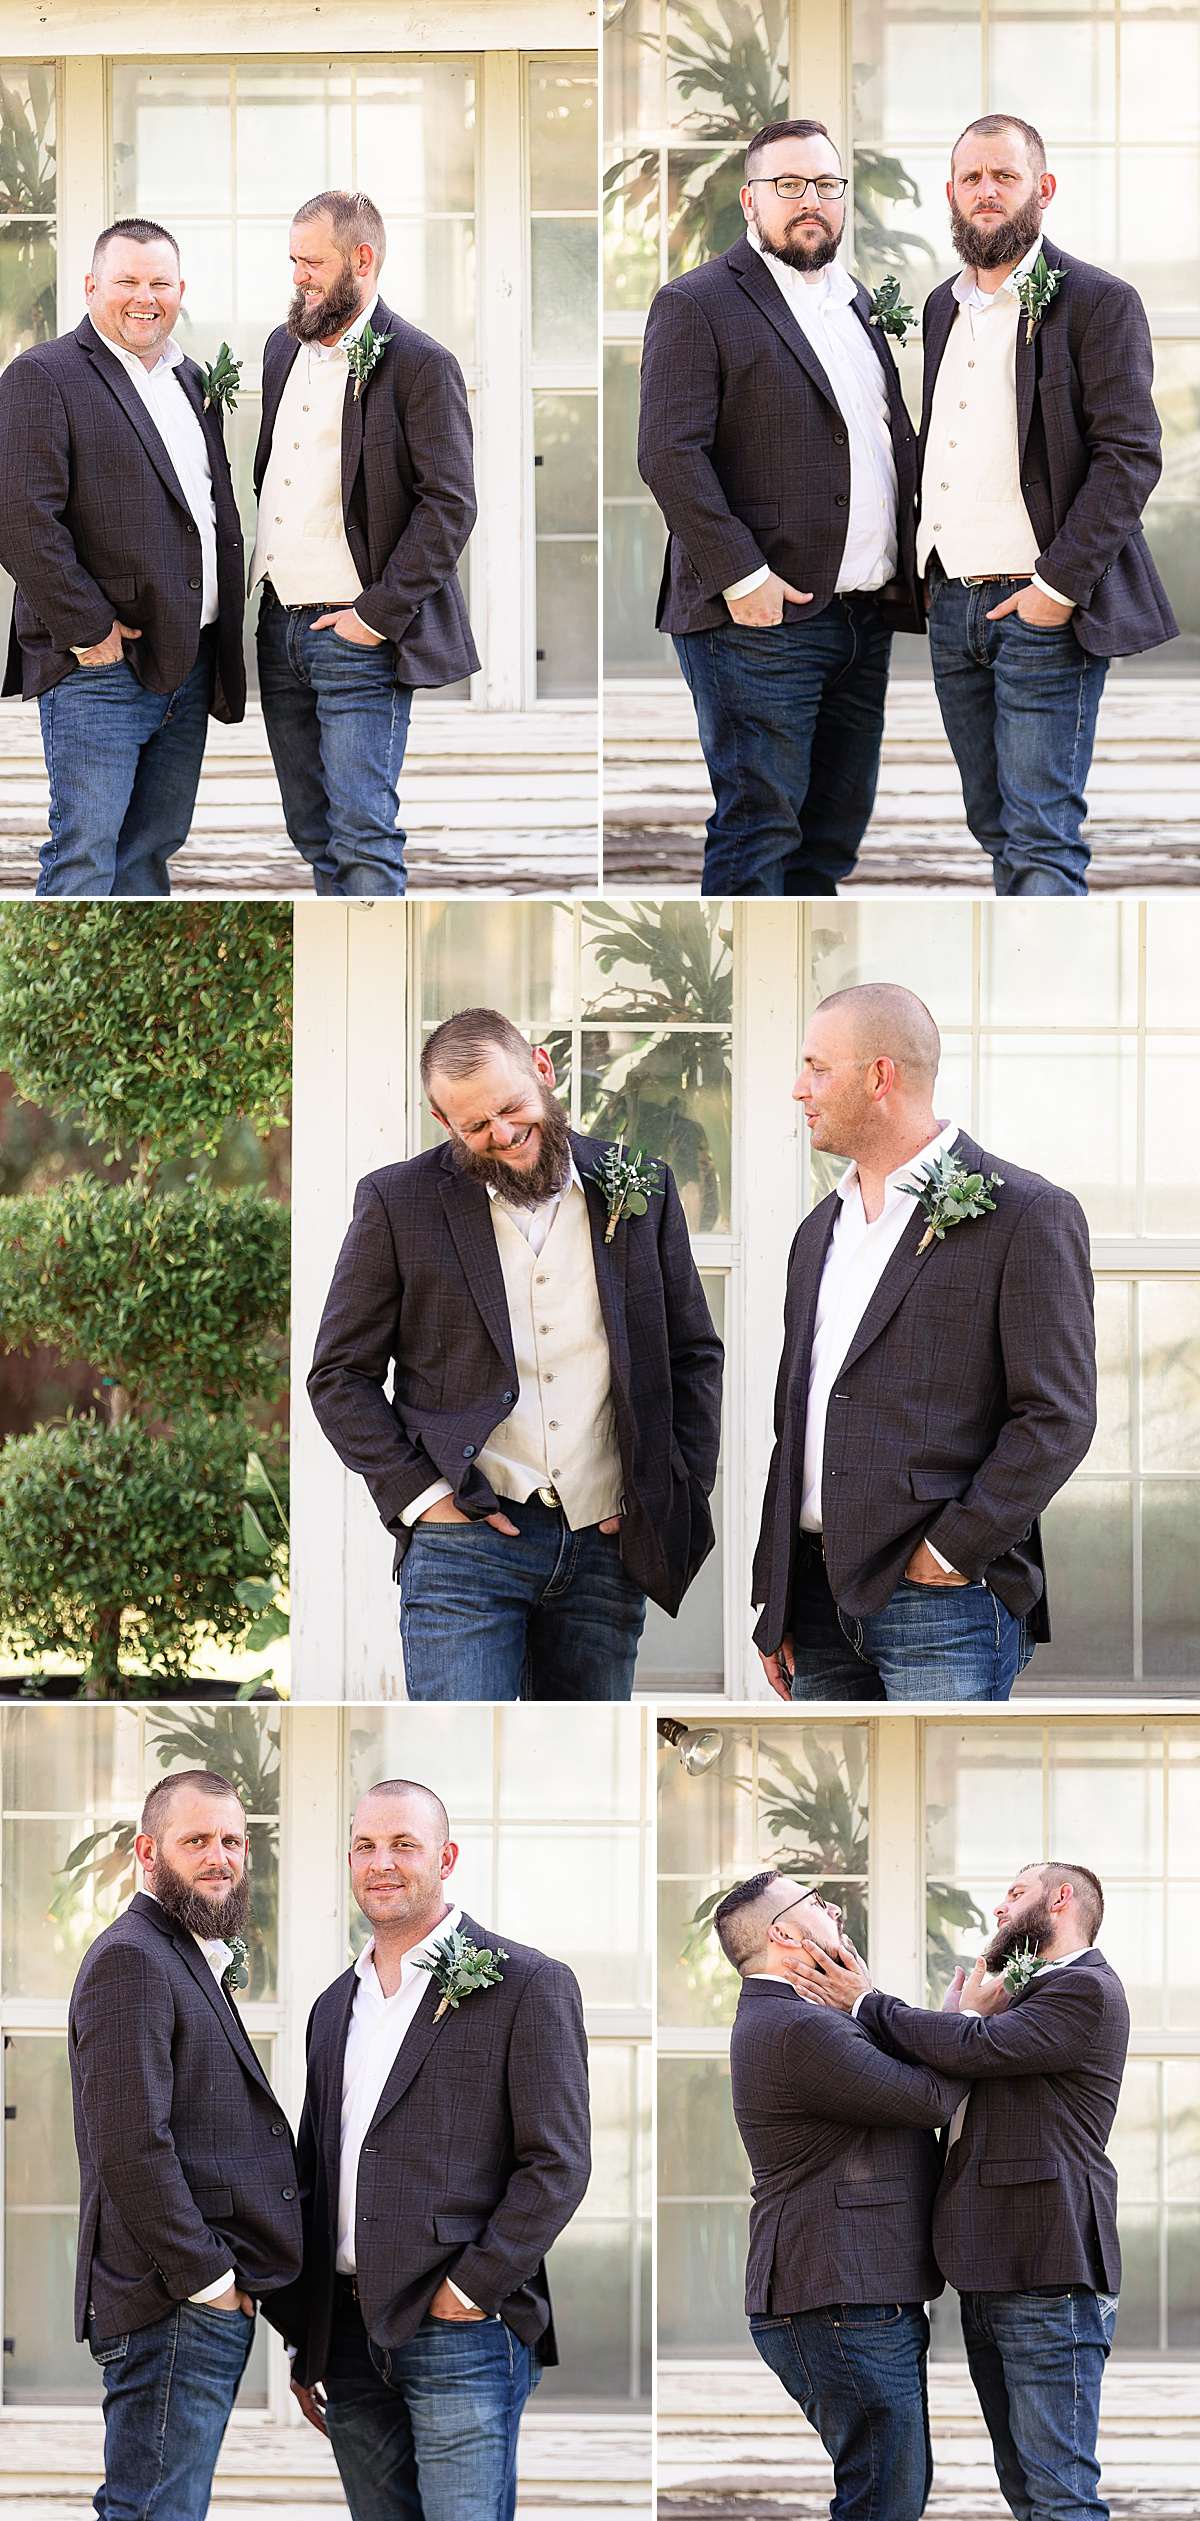 Rustic-Texas-Wedding-Hollow-Creek-Ranch-Carly-Barton-Photography_0151.jpg